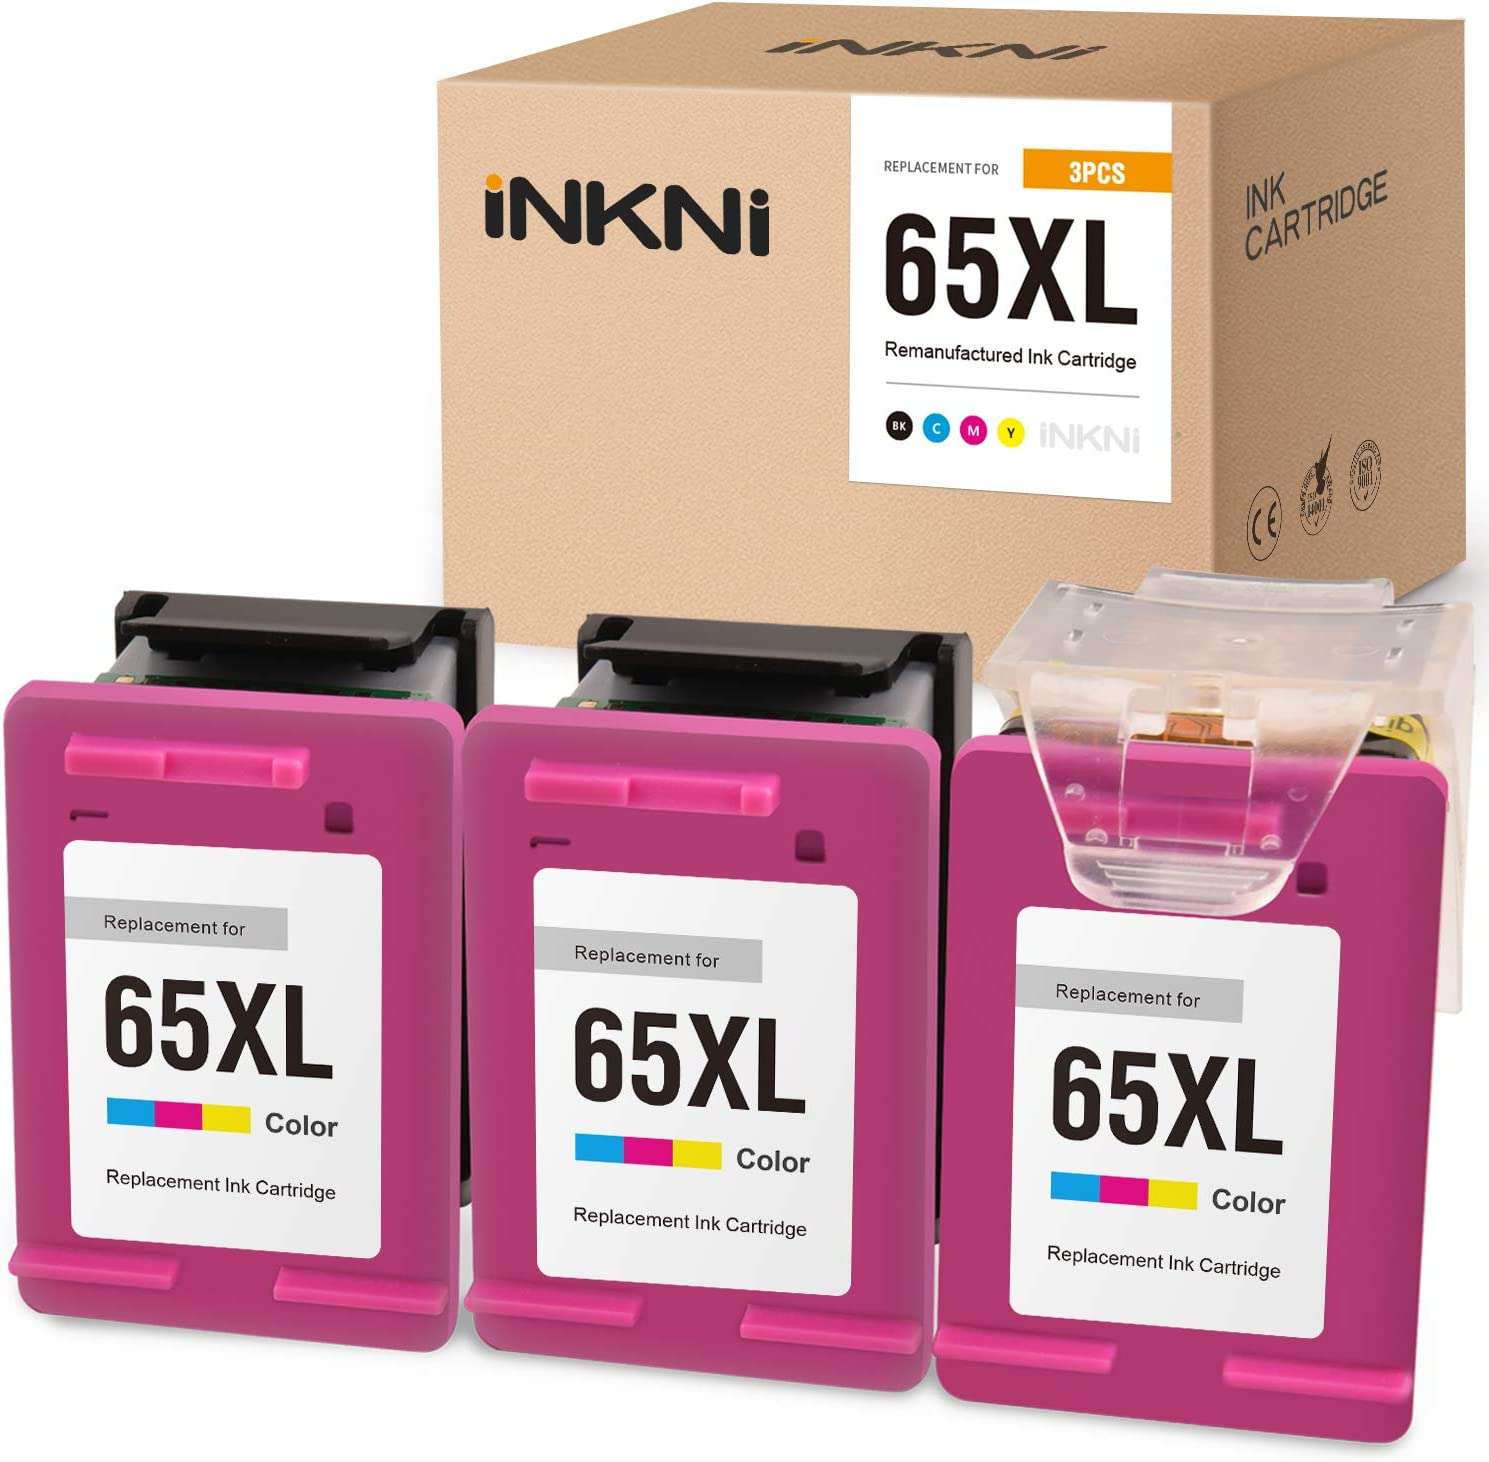 INKNI Remanufactured Ink Cartridge Replacement for HP 65XL 65 XL N9K03AN Recharge Design for Envy 5055 5052 5010 DeskJet 3752 2662 3755 2652 2655 3758 3720 3722 2624 (Print Head+Cartridges, 3-Color)